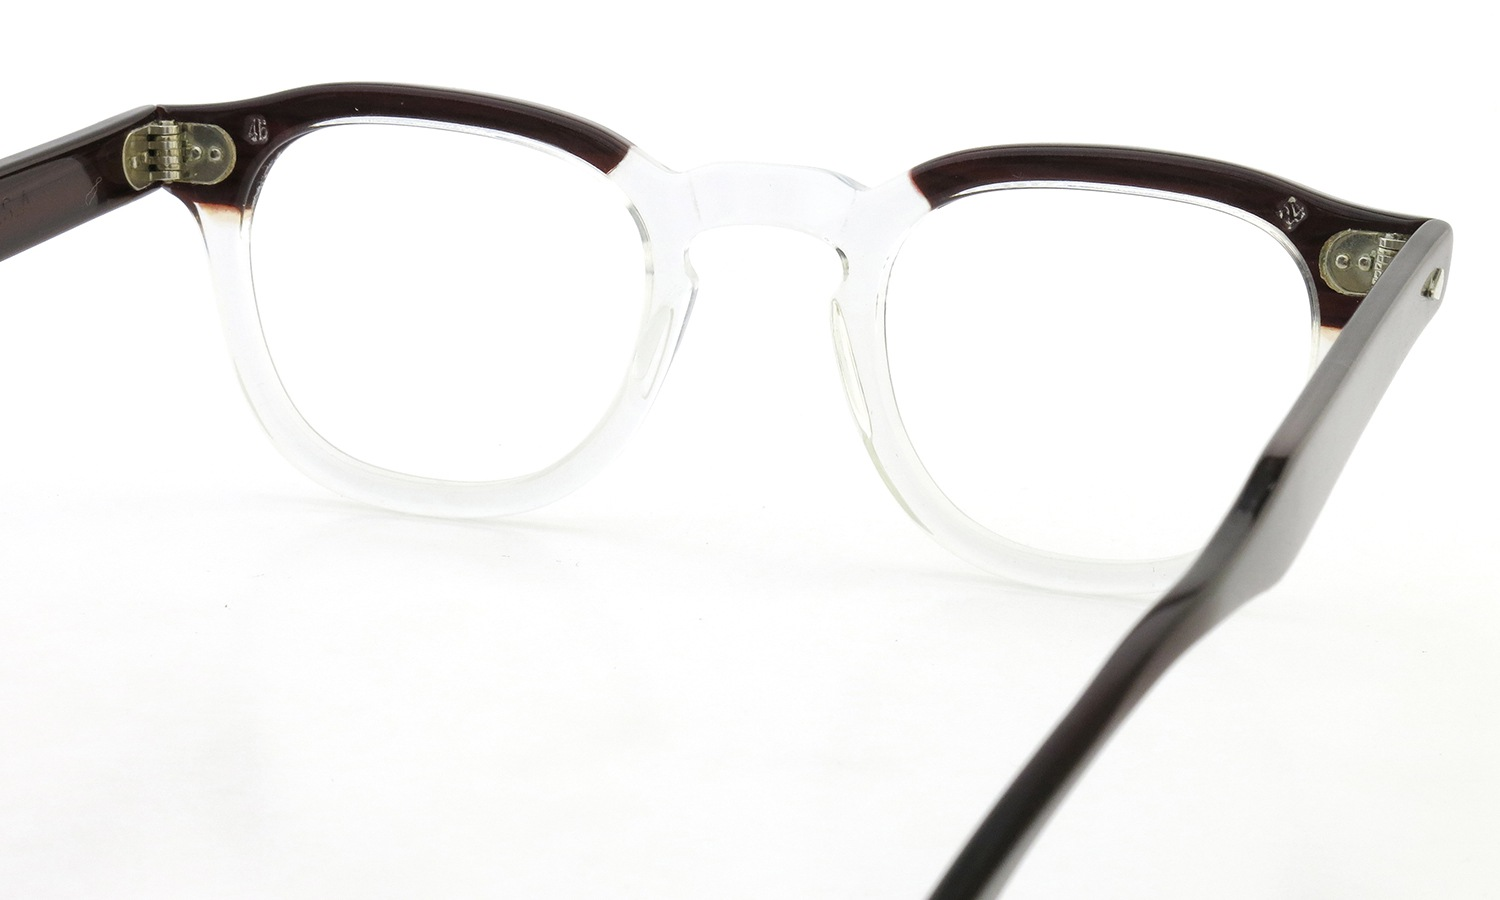 ART Optical vintage メガネ ARNEL REDWOOD C.B. 46-20